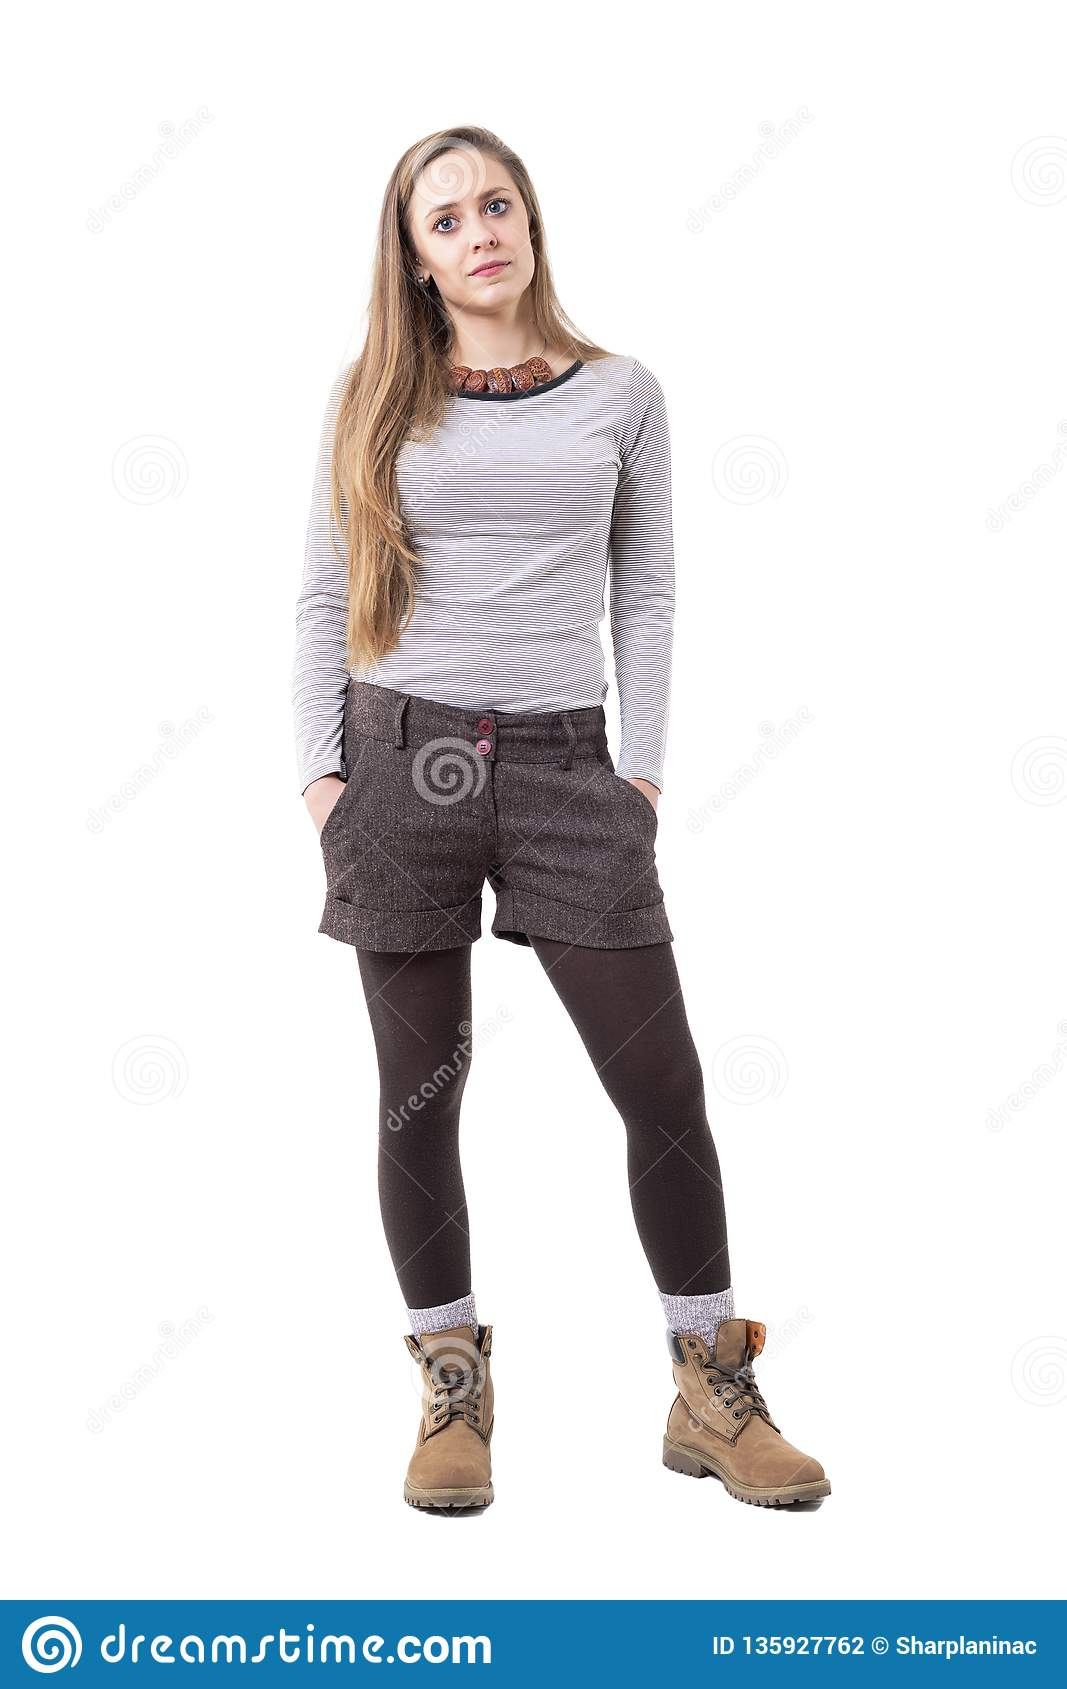 Beautiful long hair hipster girl with authentic clothing styles looking at camera.